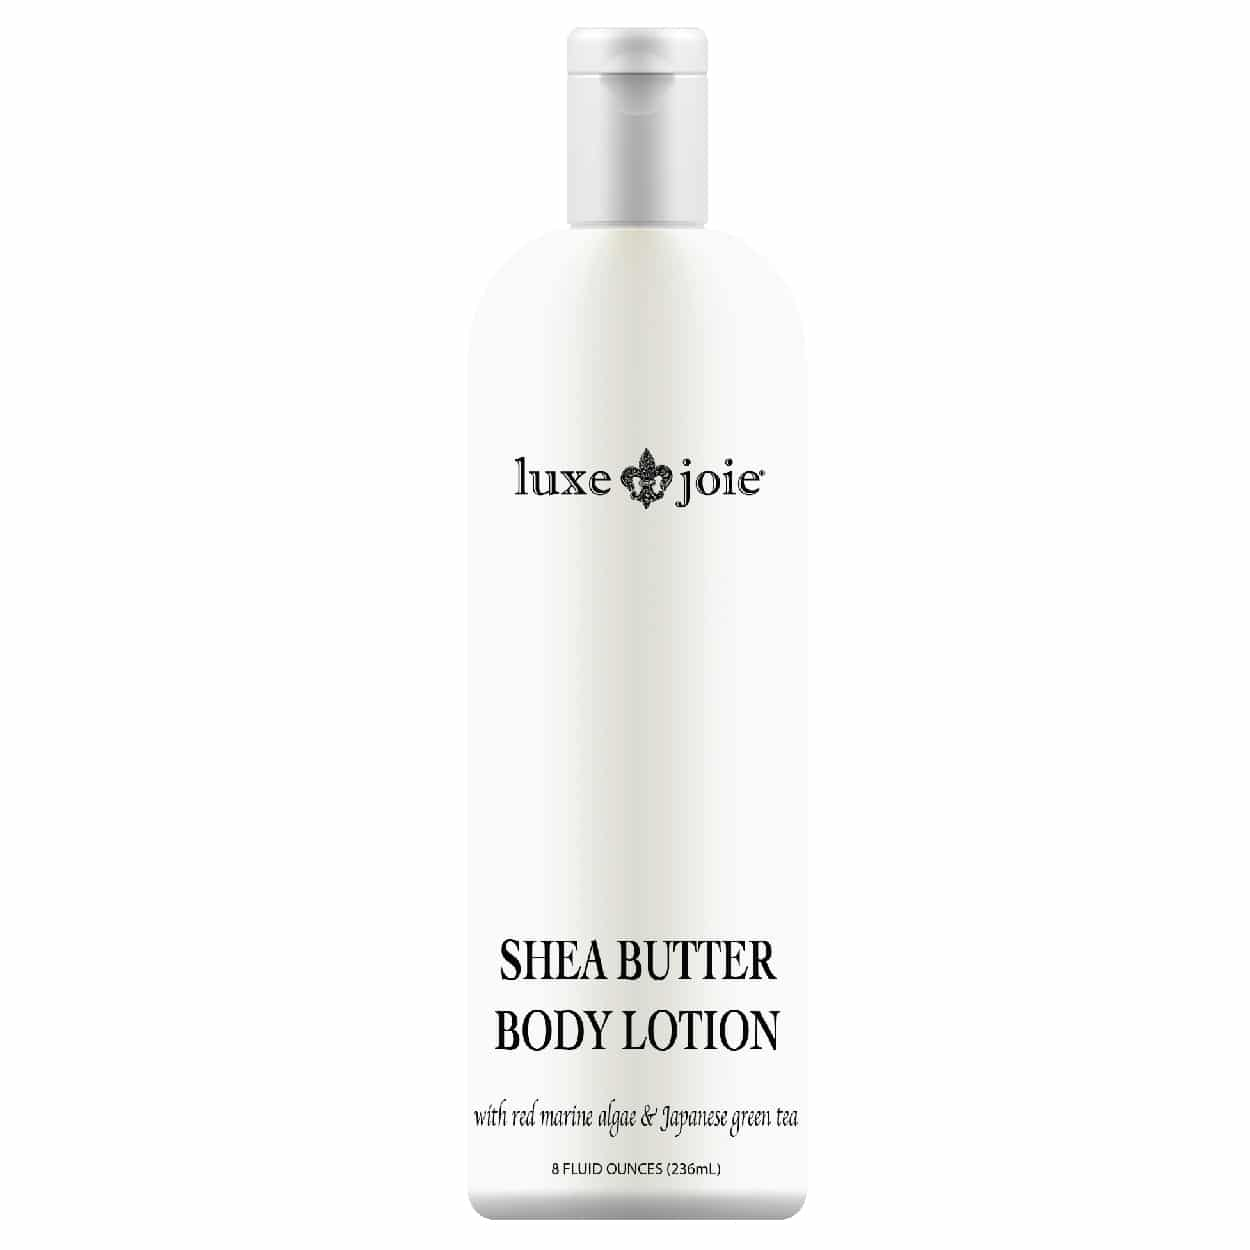 shea butter body lotion on white background